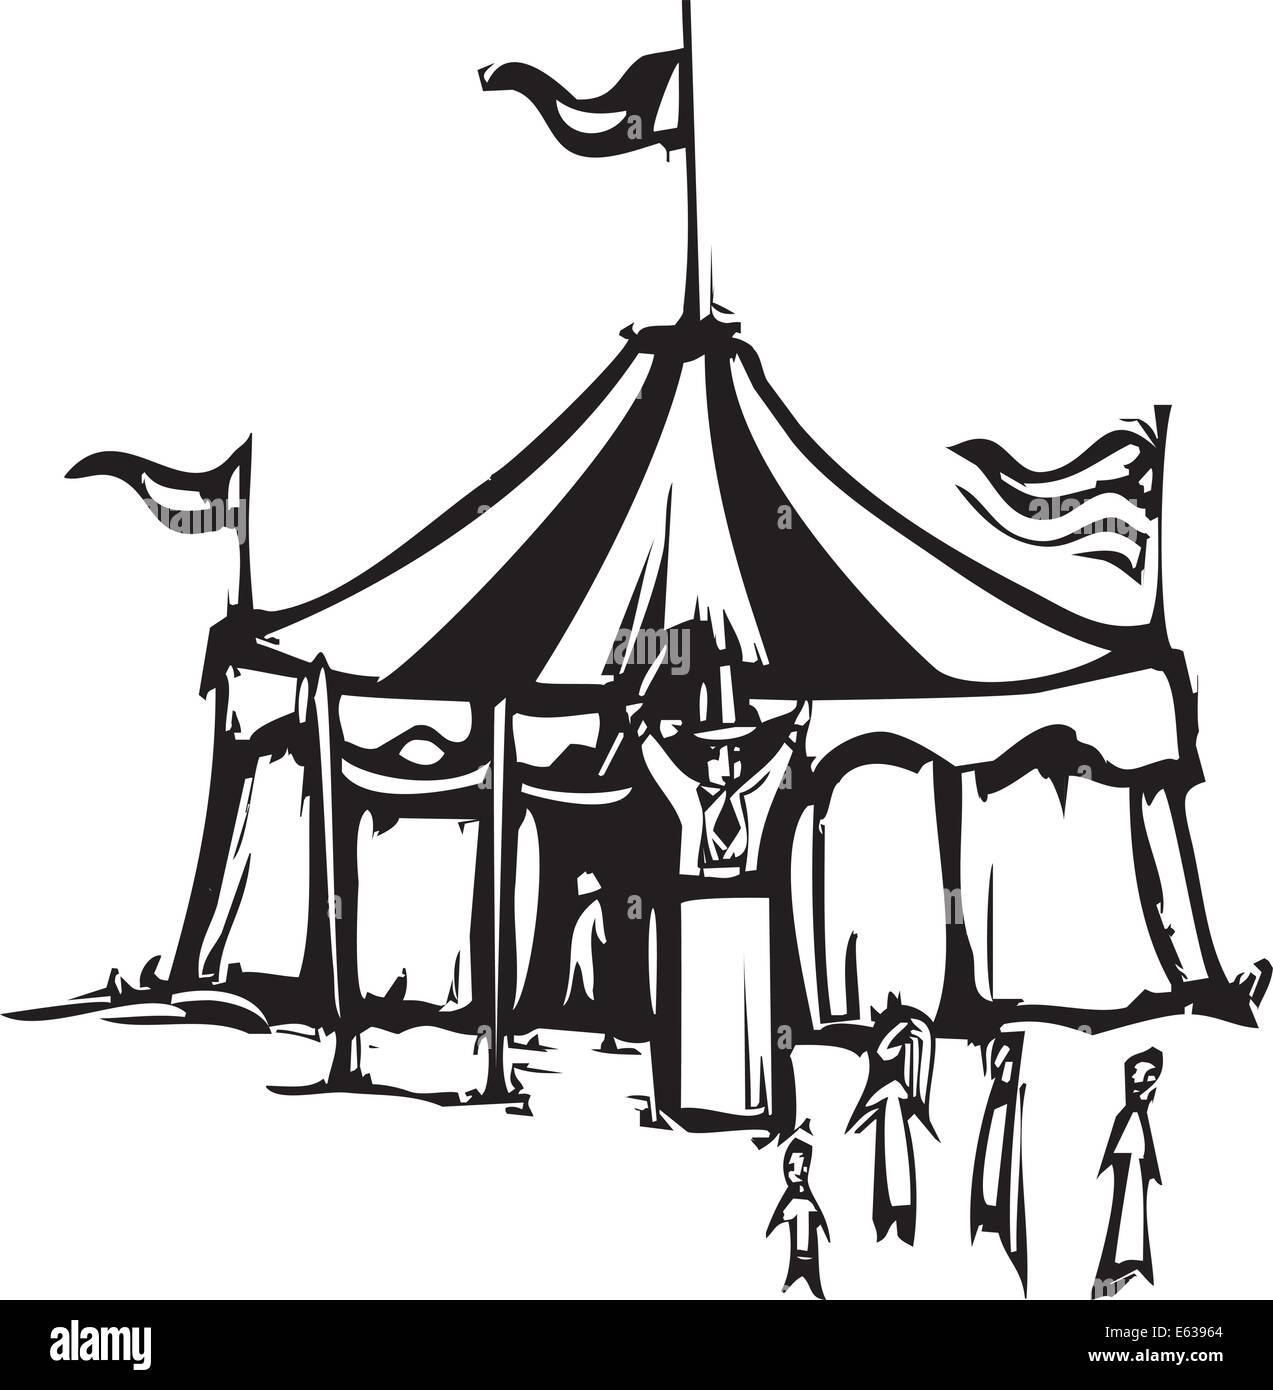 Woodcut expressionist style image of a carnival circus tent  sc 1 st  Alamy & Woodcut expressionist style image of a carnival circus tent Stock ...